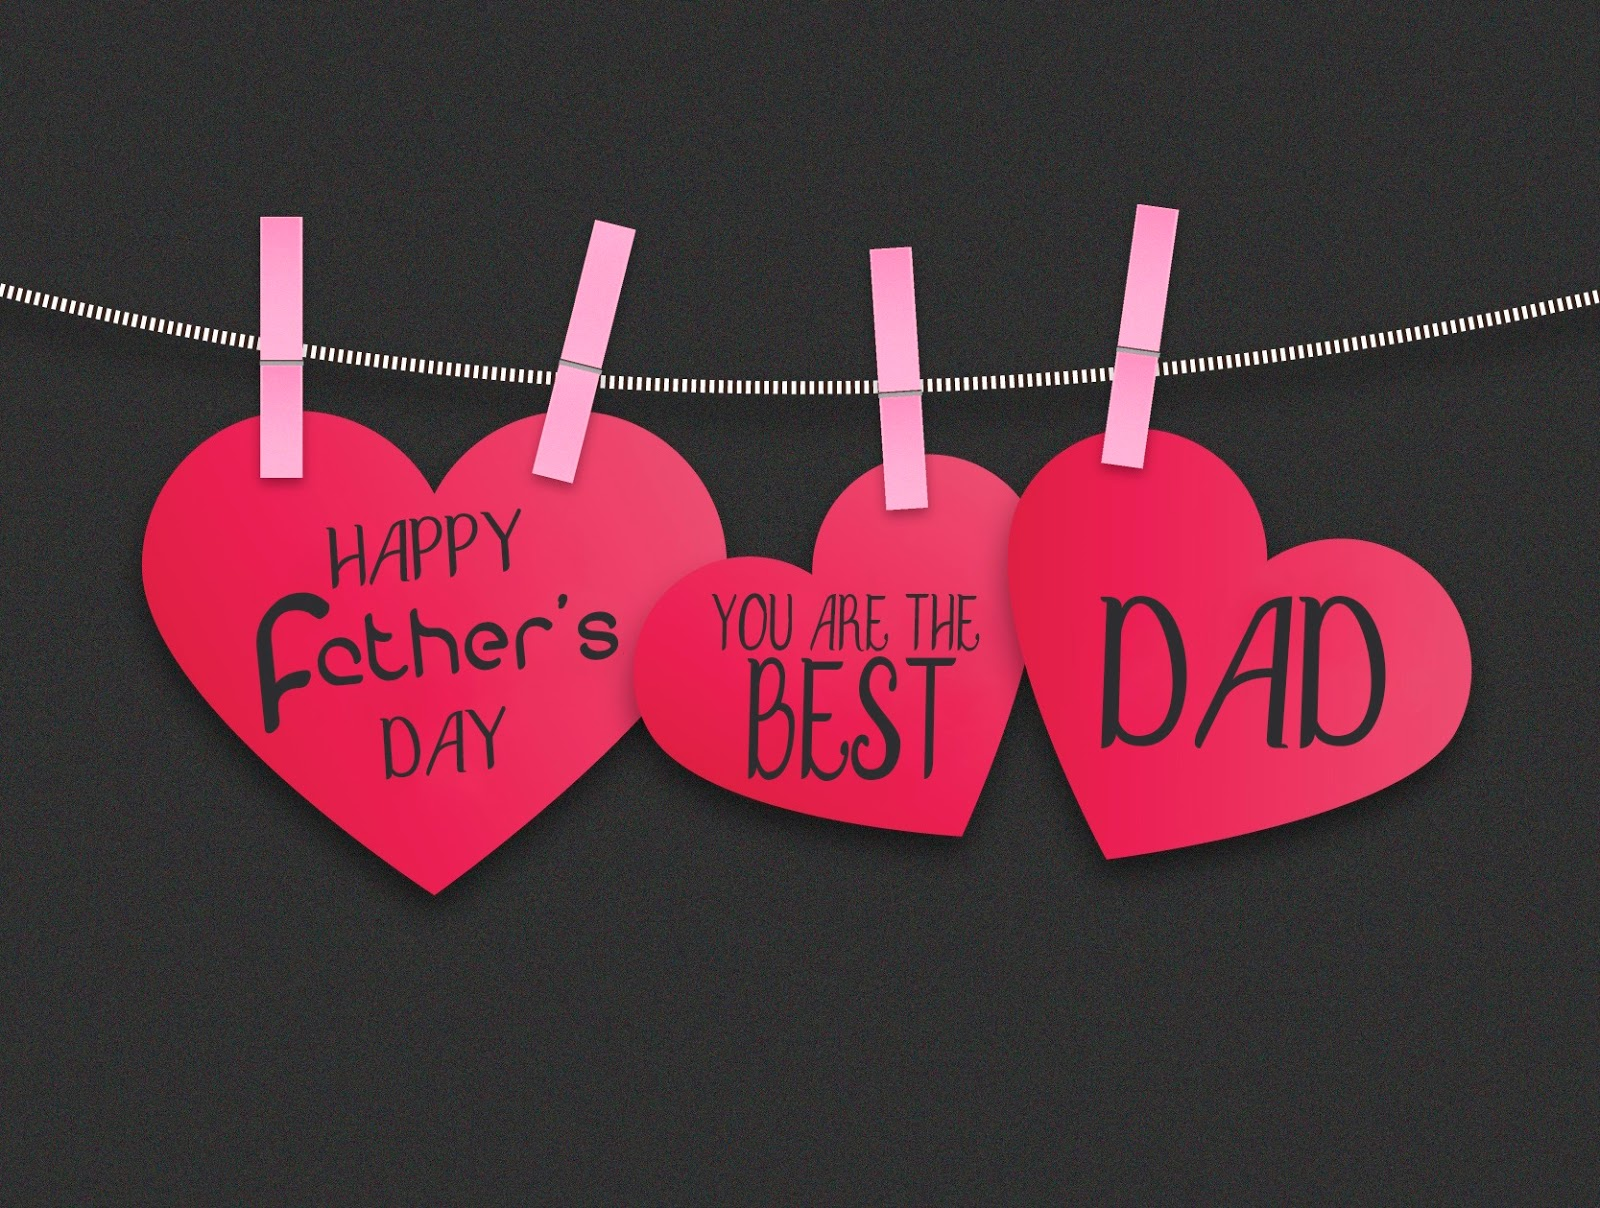 Happy Fathers Day 2016 Hd Wallpapers Free Download Hd